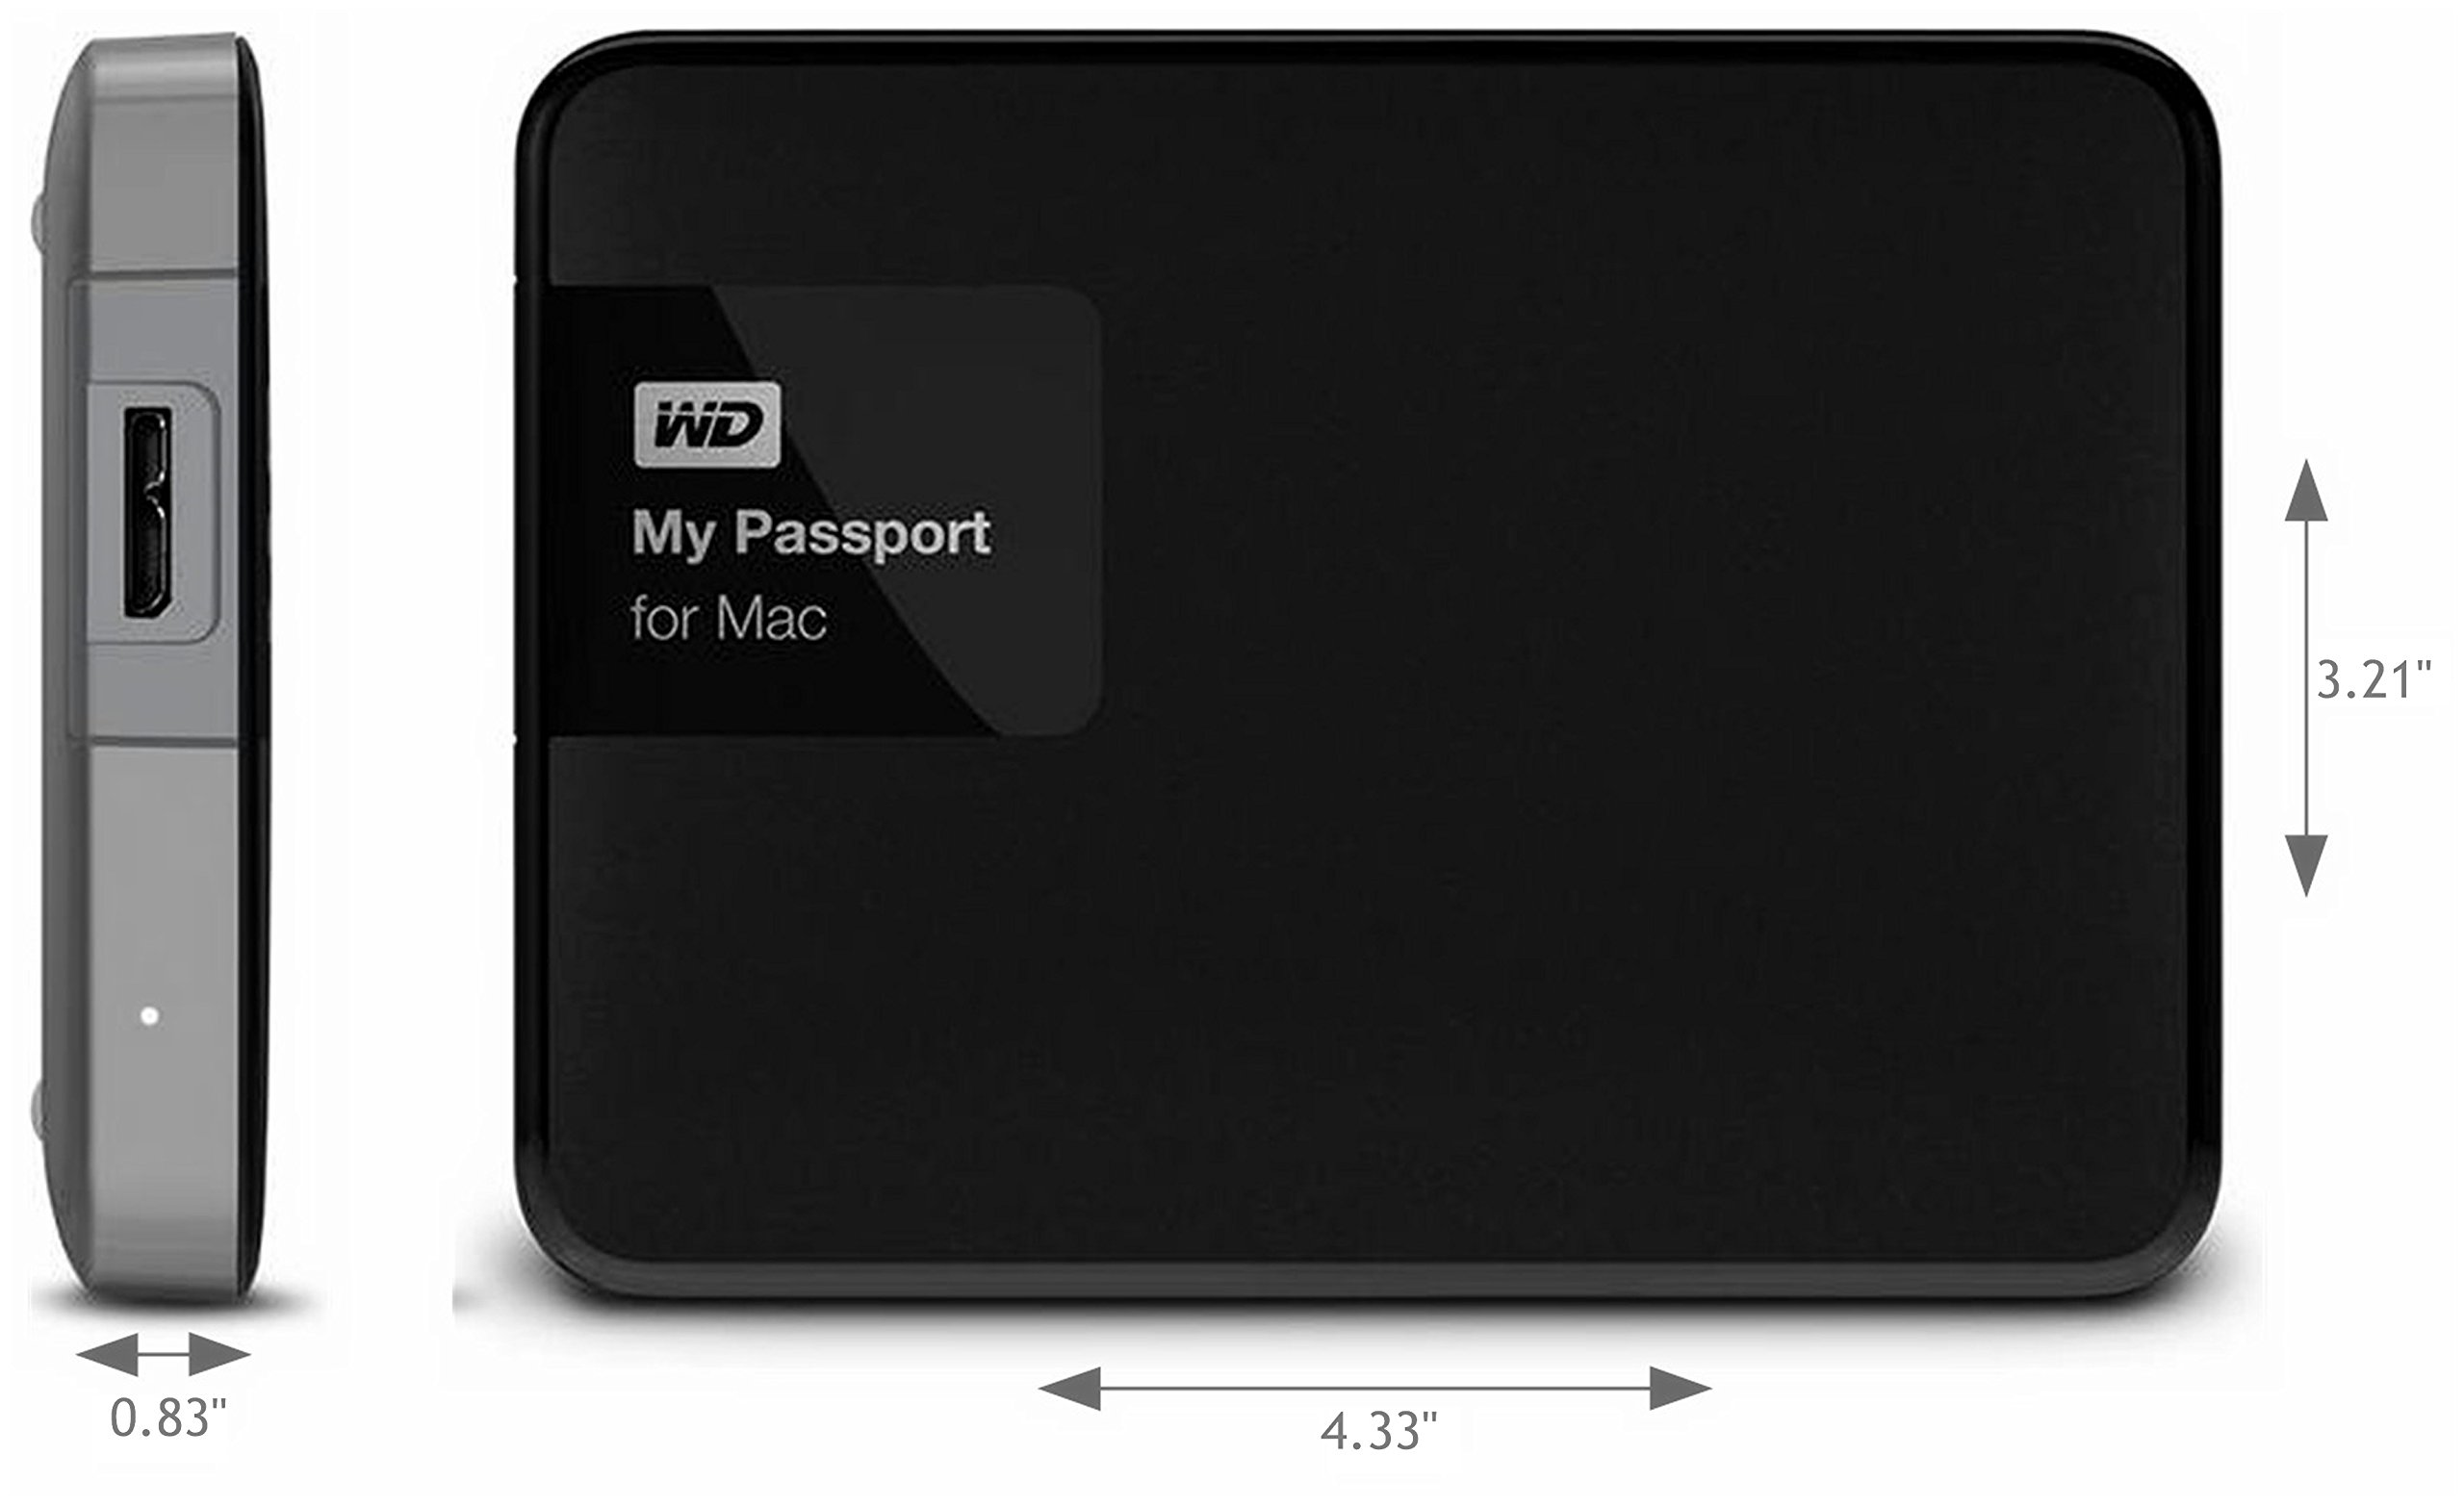 3TB Portable External Drive W/ USB 3.0 - WD My Passport Mac WDBCGL0030BSL